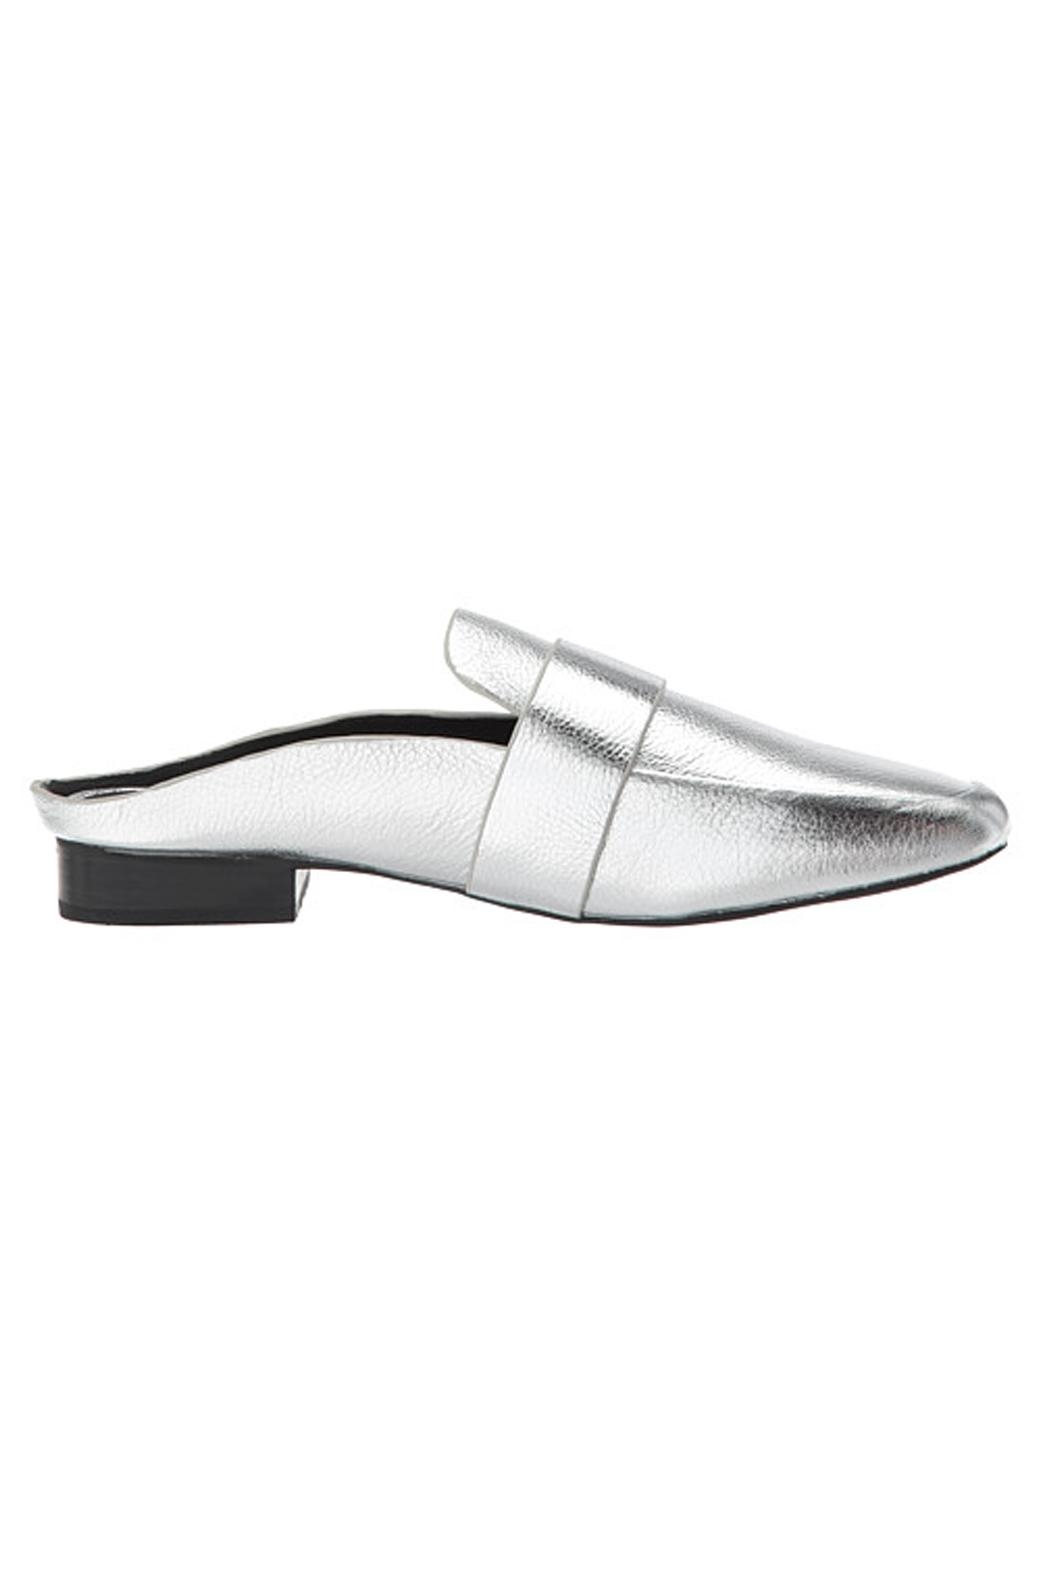 SOLSANA Renold Leather Mule Shoes - Side Cropped Image